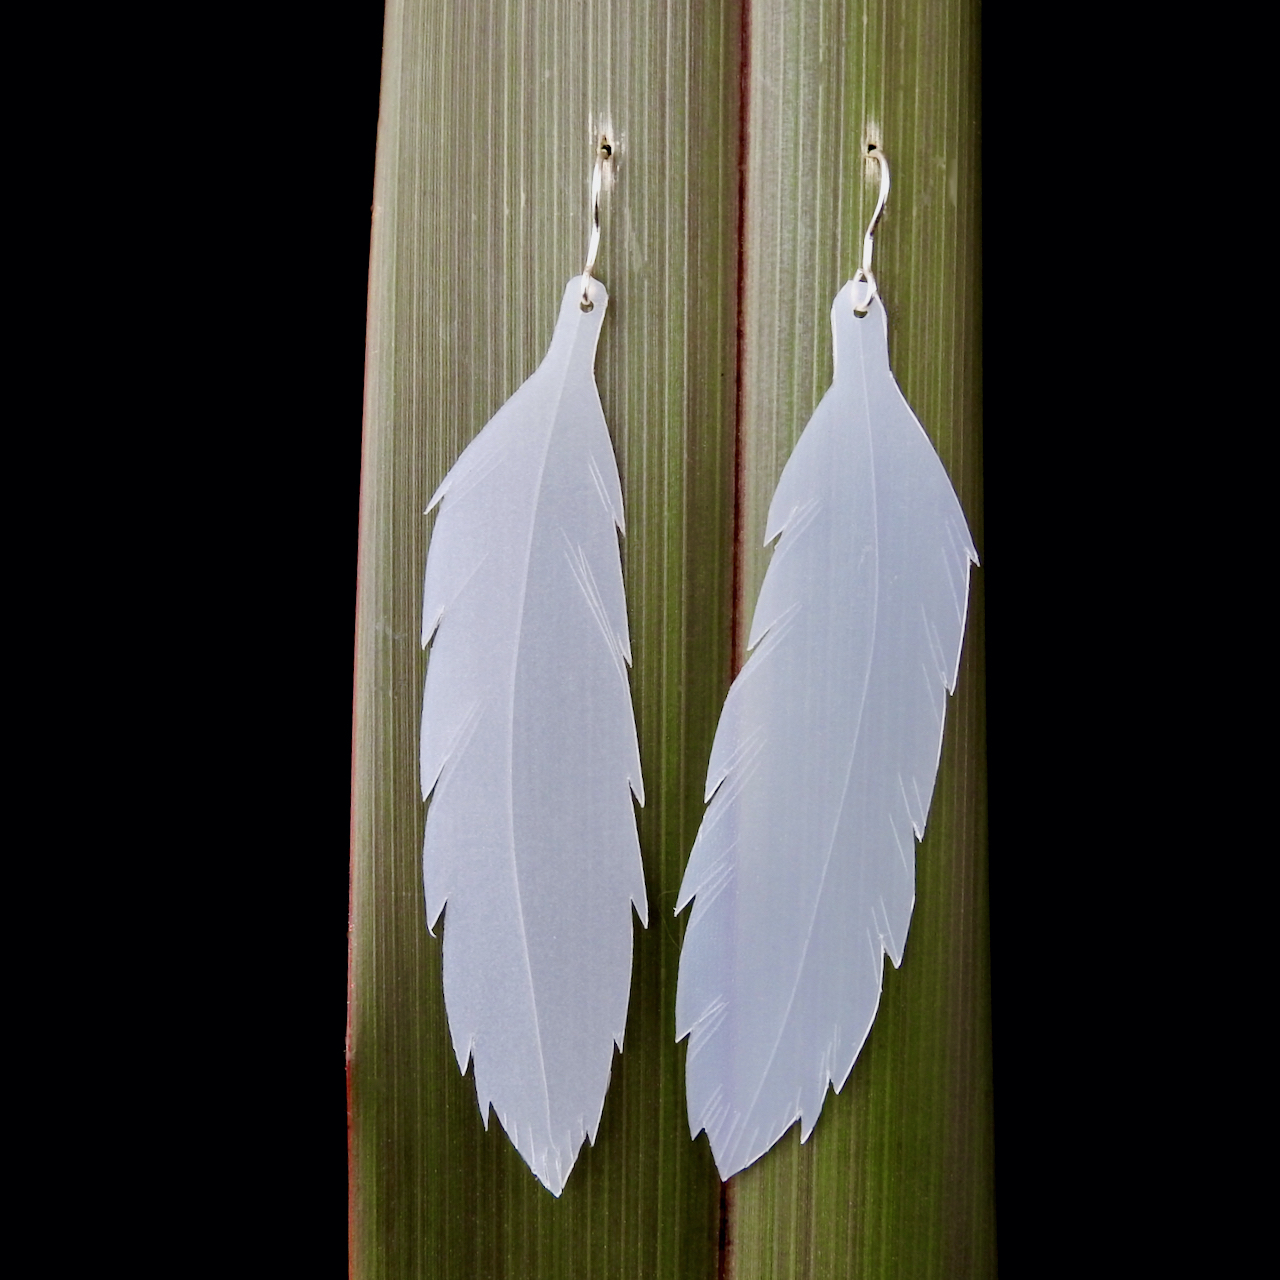 Large Feather Earrings handmade from plastic milk bottles and eco sterling silver hooks_hanging on flax